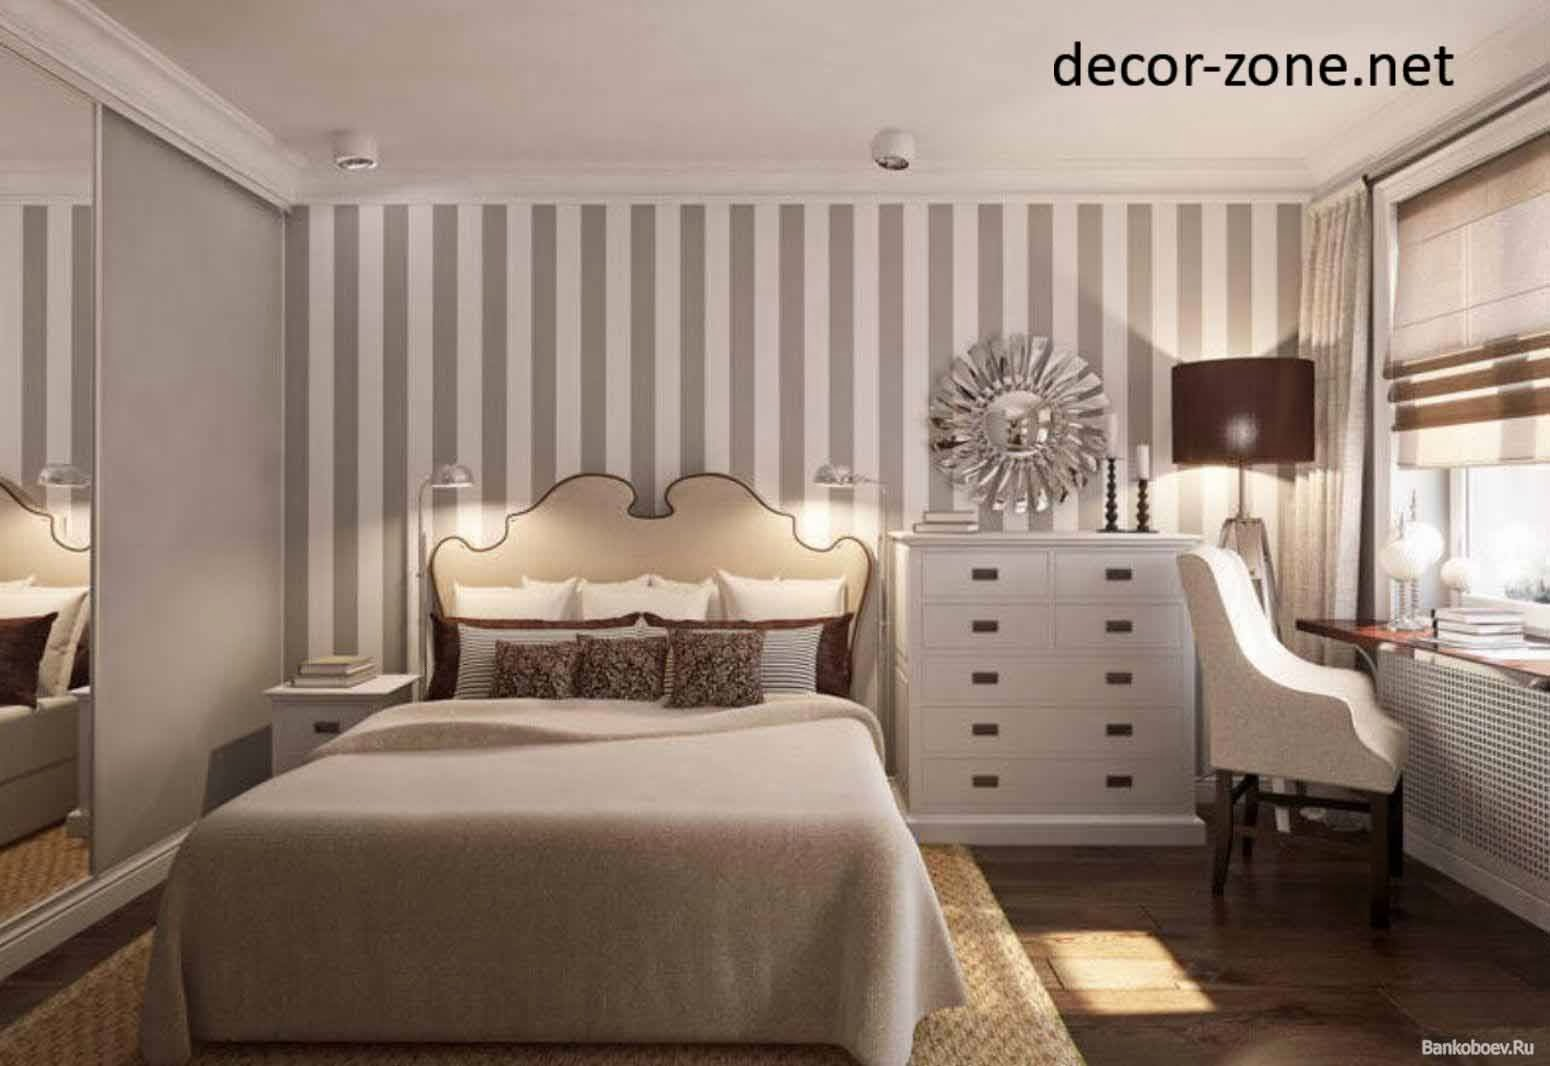 Wall decor ideas for the master bedroom for Bed wallpaper design